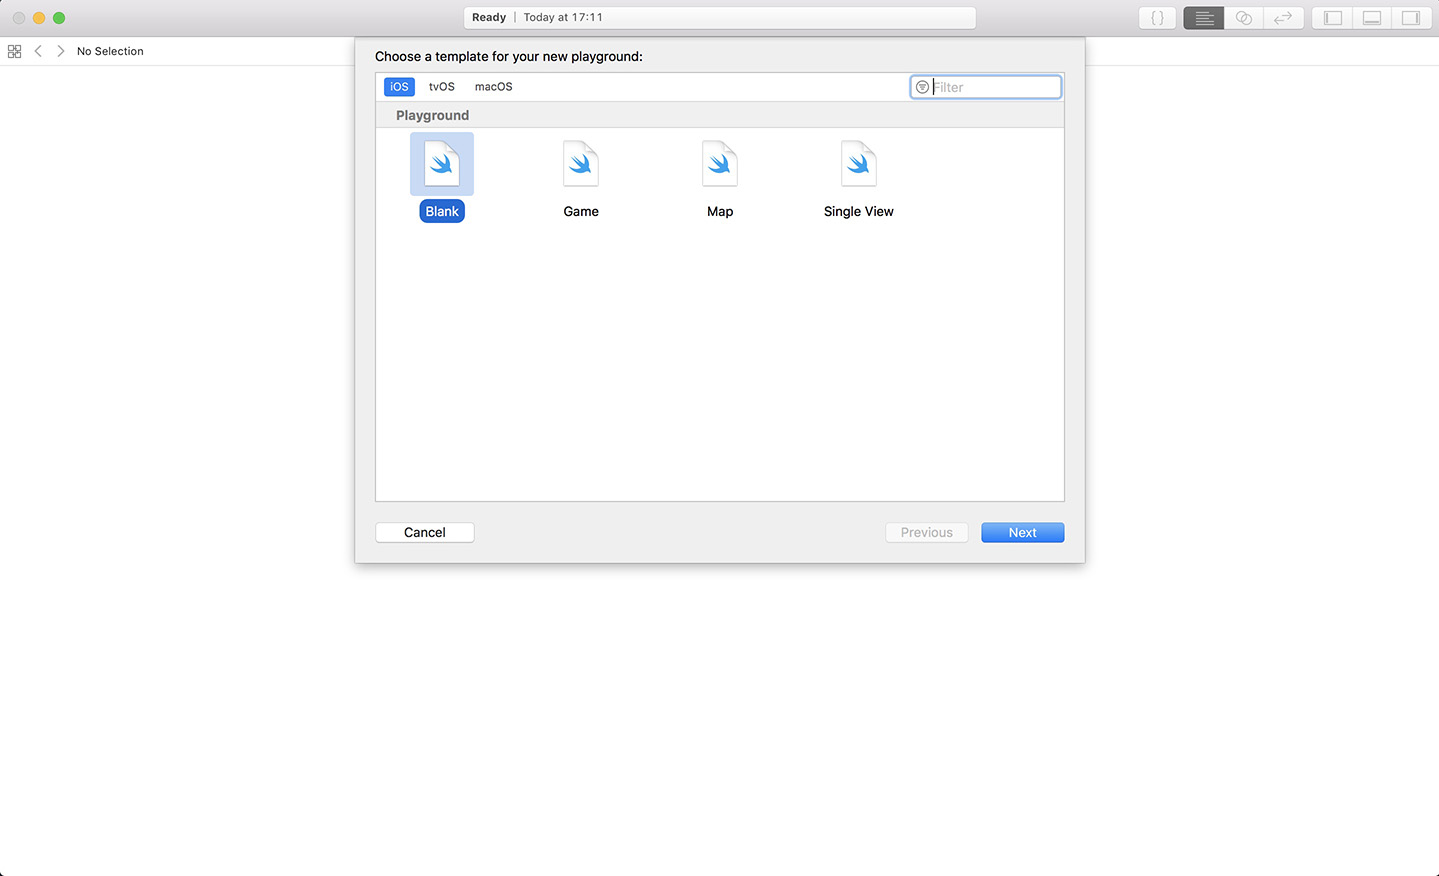 Getting Started With Xcode Playgrounds